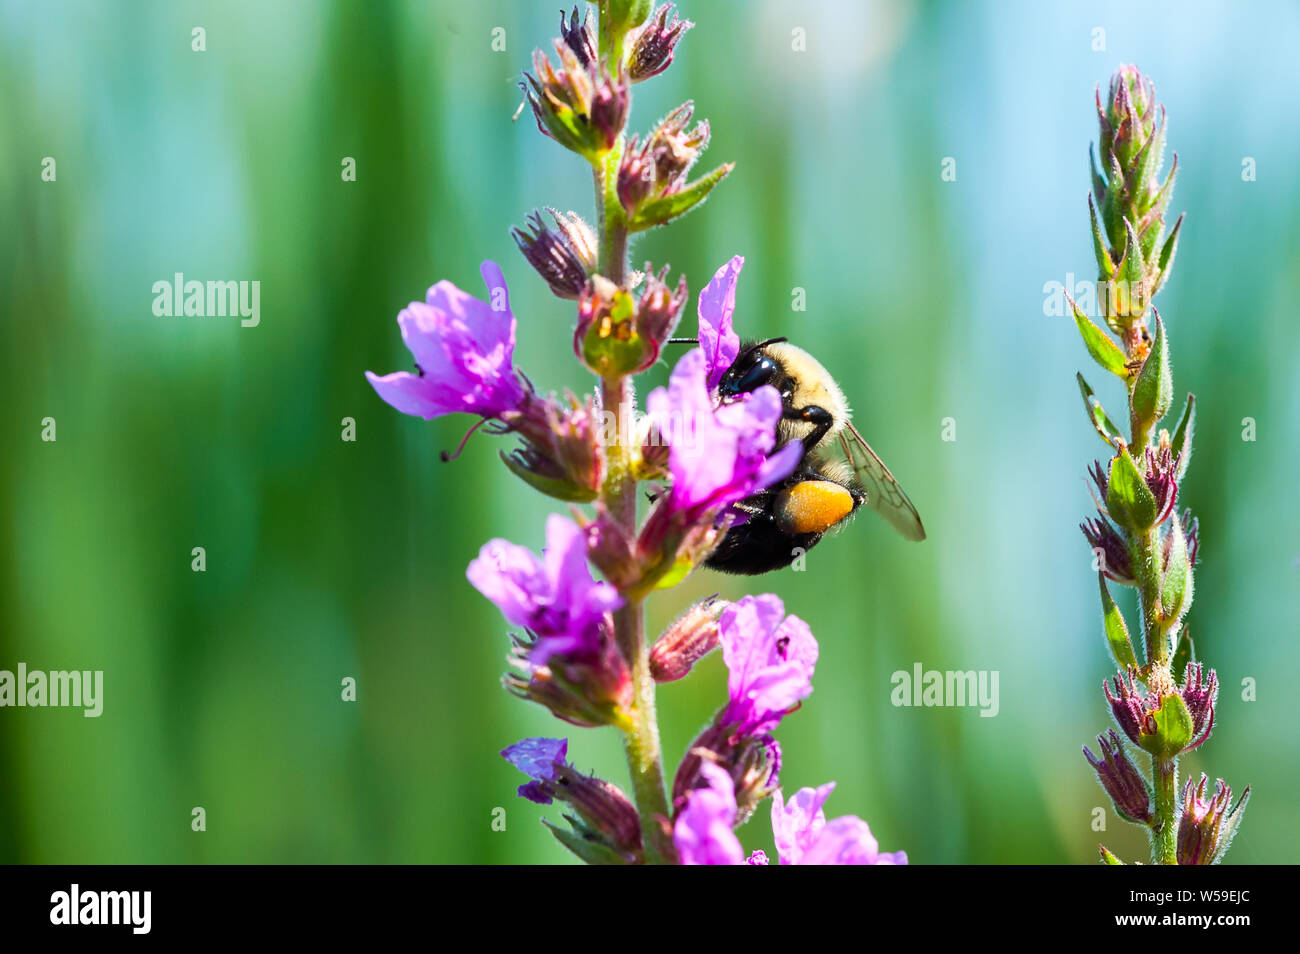 Bumblebee collecting pollen from fuchsia-colored flowers. Stock Photo